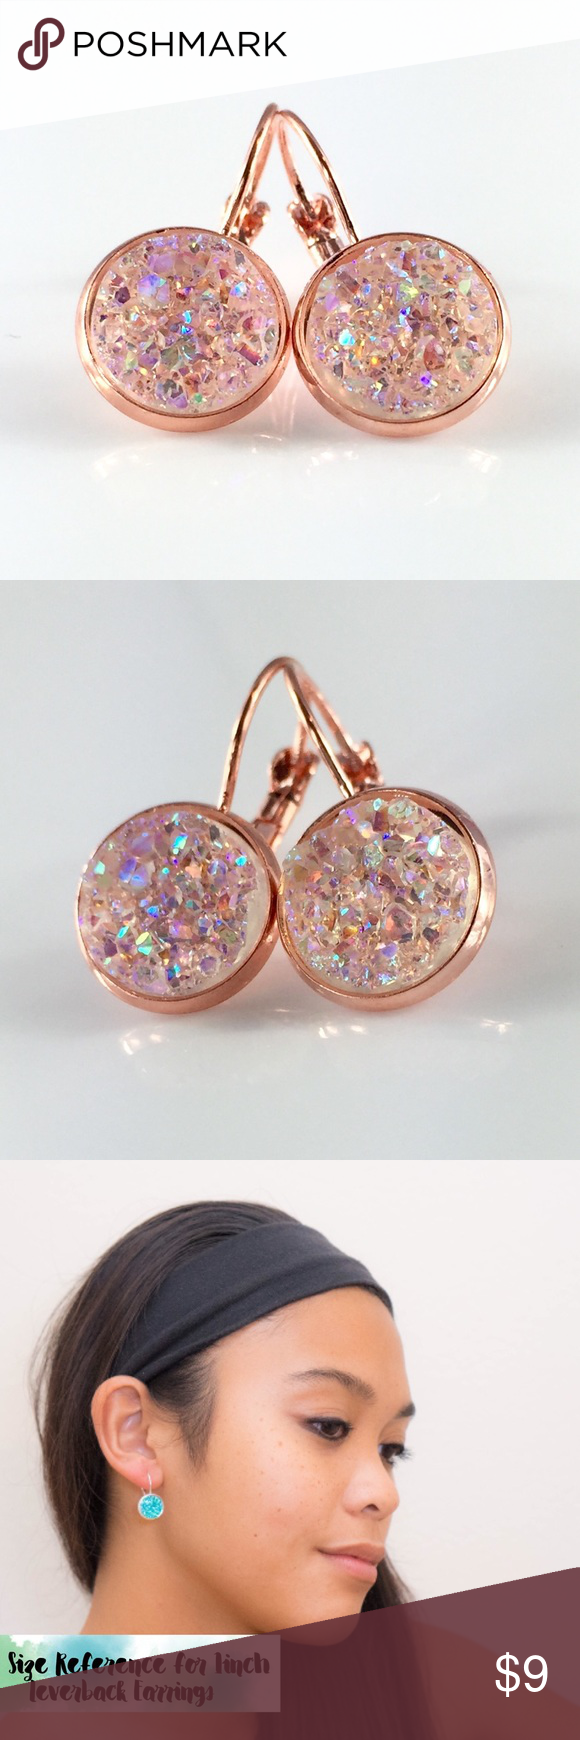 Light peach crystal faux druzy rose gold earrings Handmade by me Chunky light peach crystal with faux druzy 1 inch rose gold tone frenchback earrings. Lightweight. Bundle & save 15%. Price FIRM if buying 1 pair. Each piece varies slightly in shape. Made of acrylic resin. #drusy #druzy #druzyearrings 🚫 thejeweladdict Jewelry Earrings